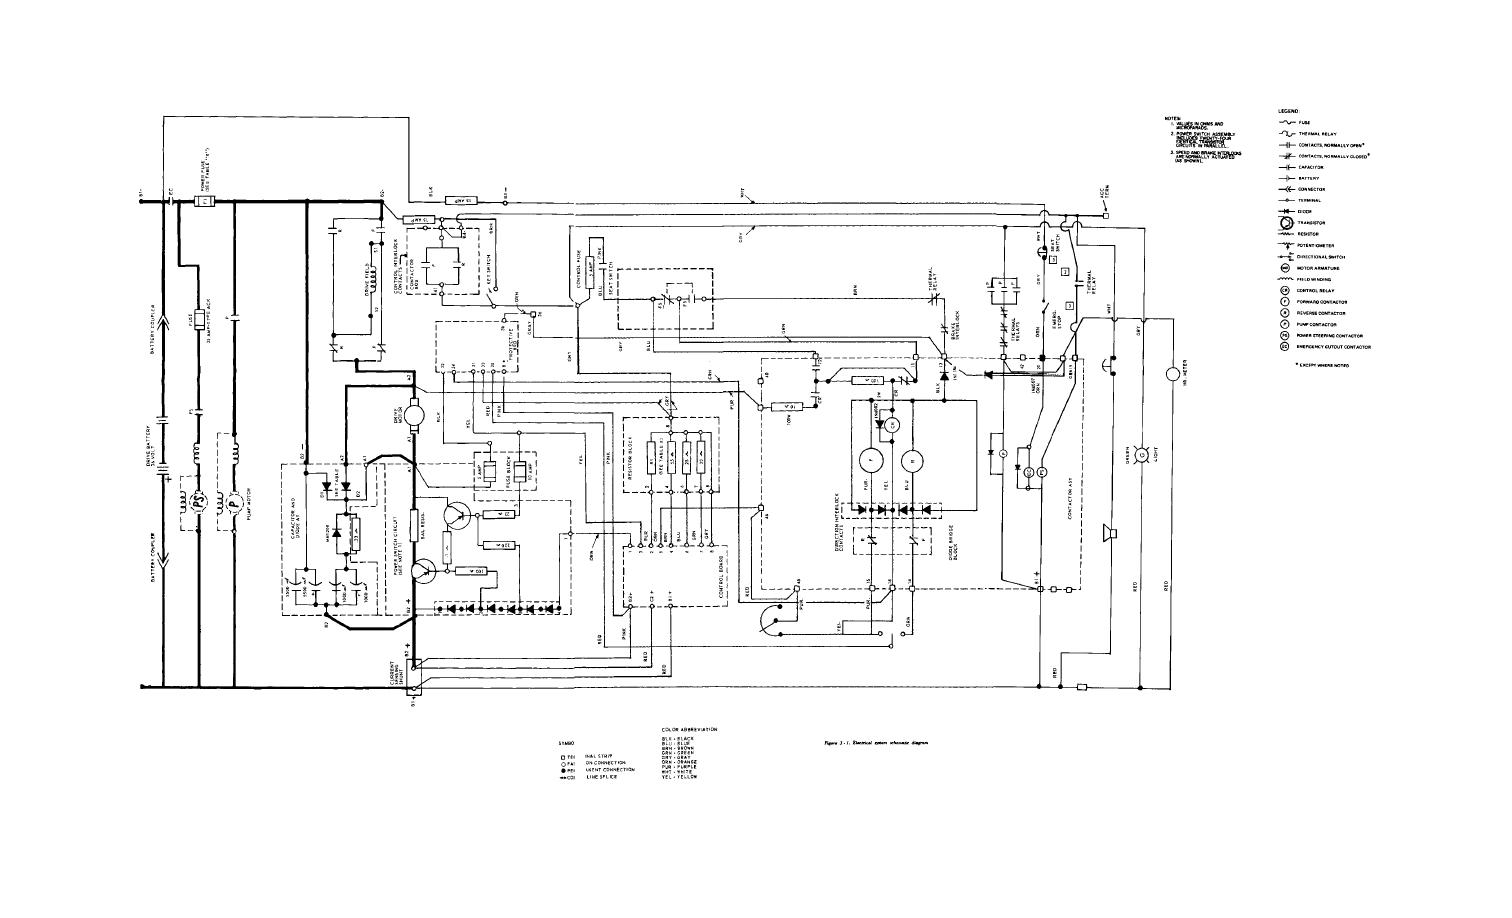 Figure 3-1. Electrical System Schematic Diagram